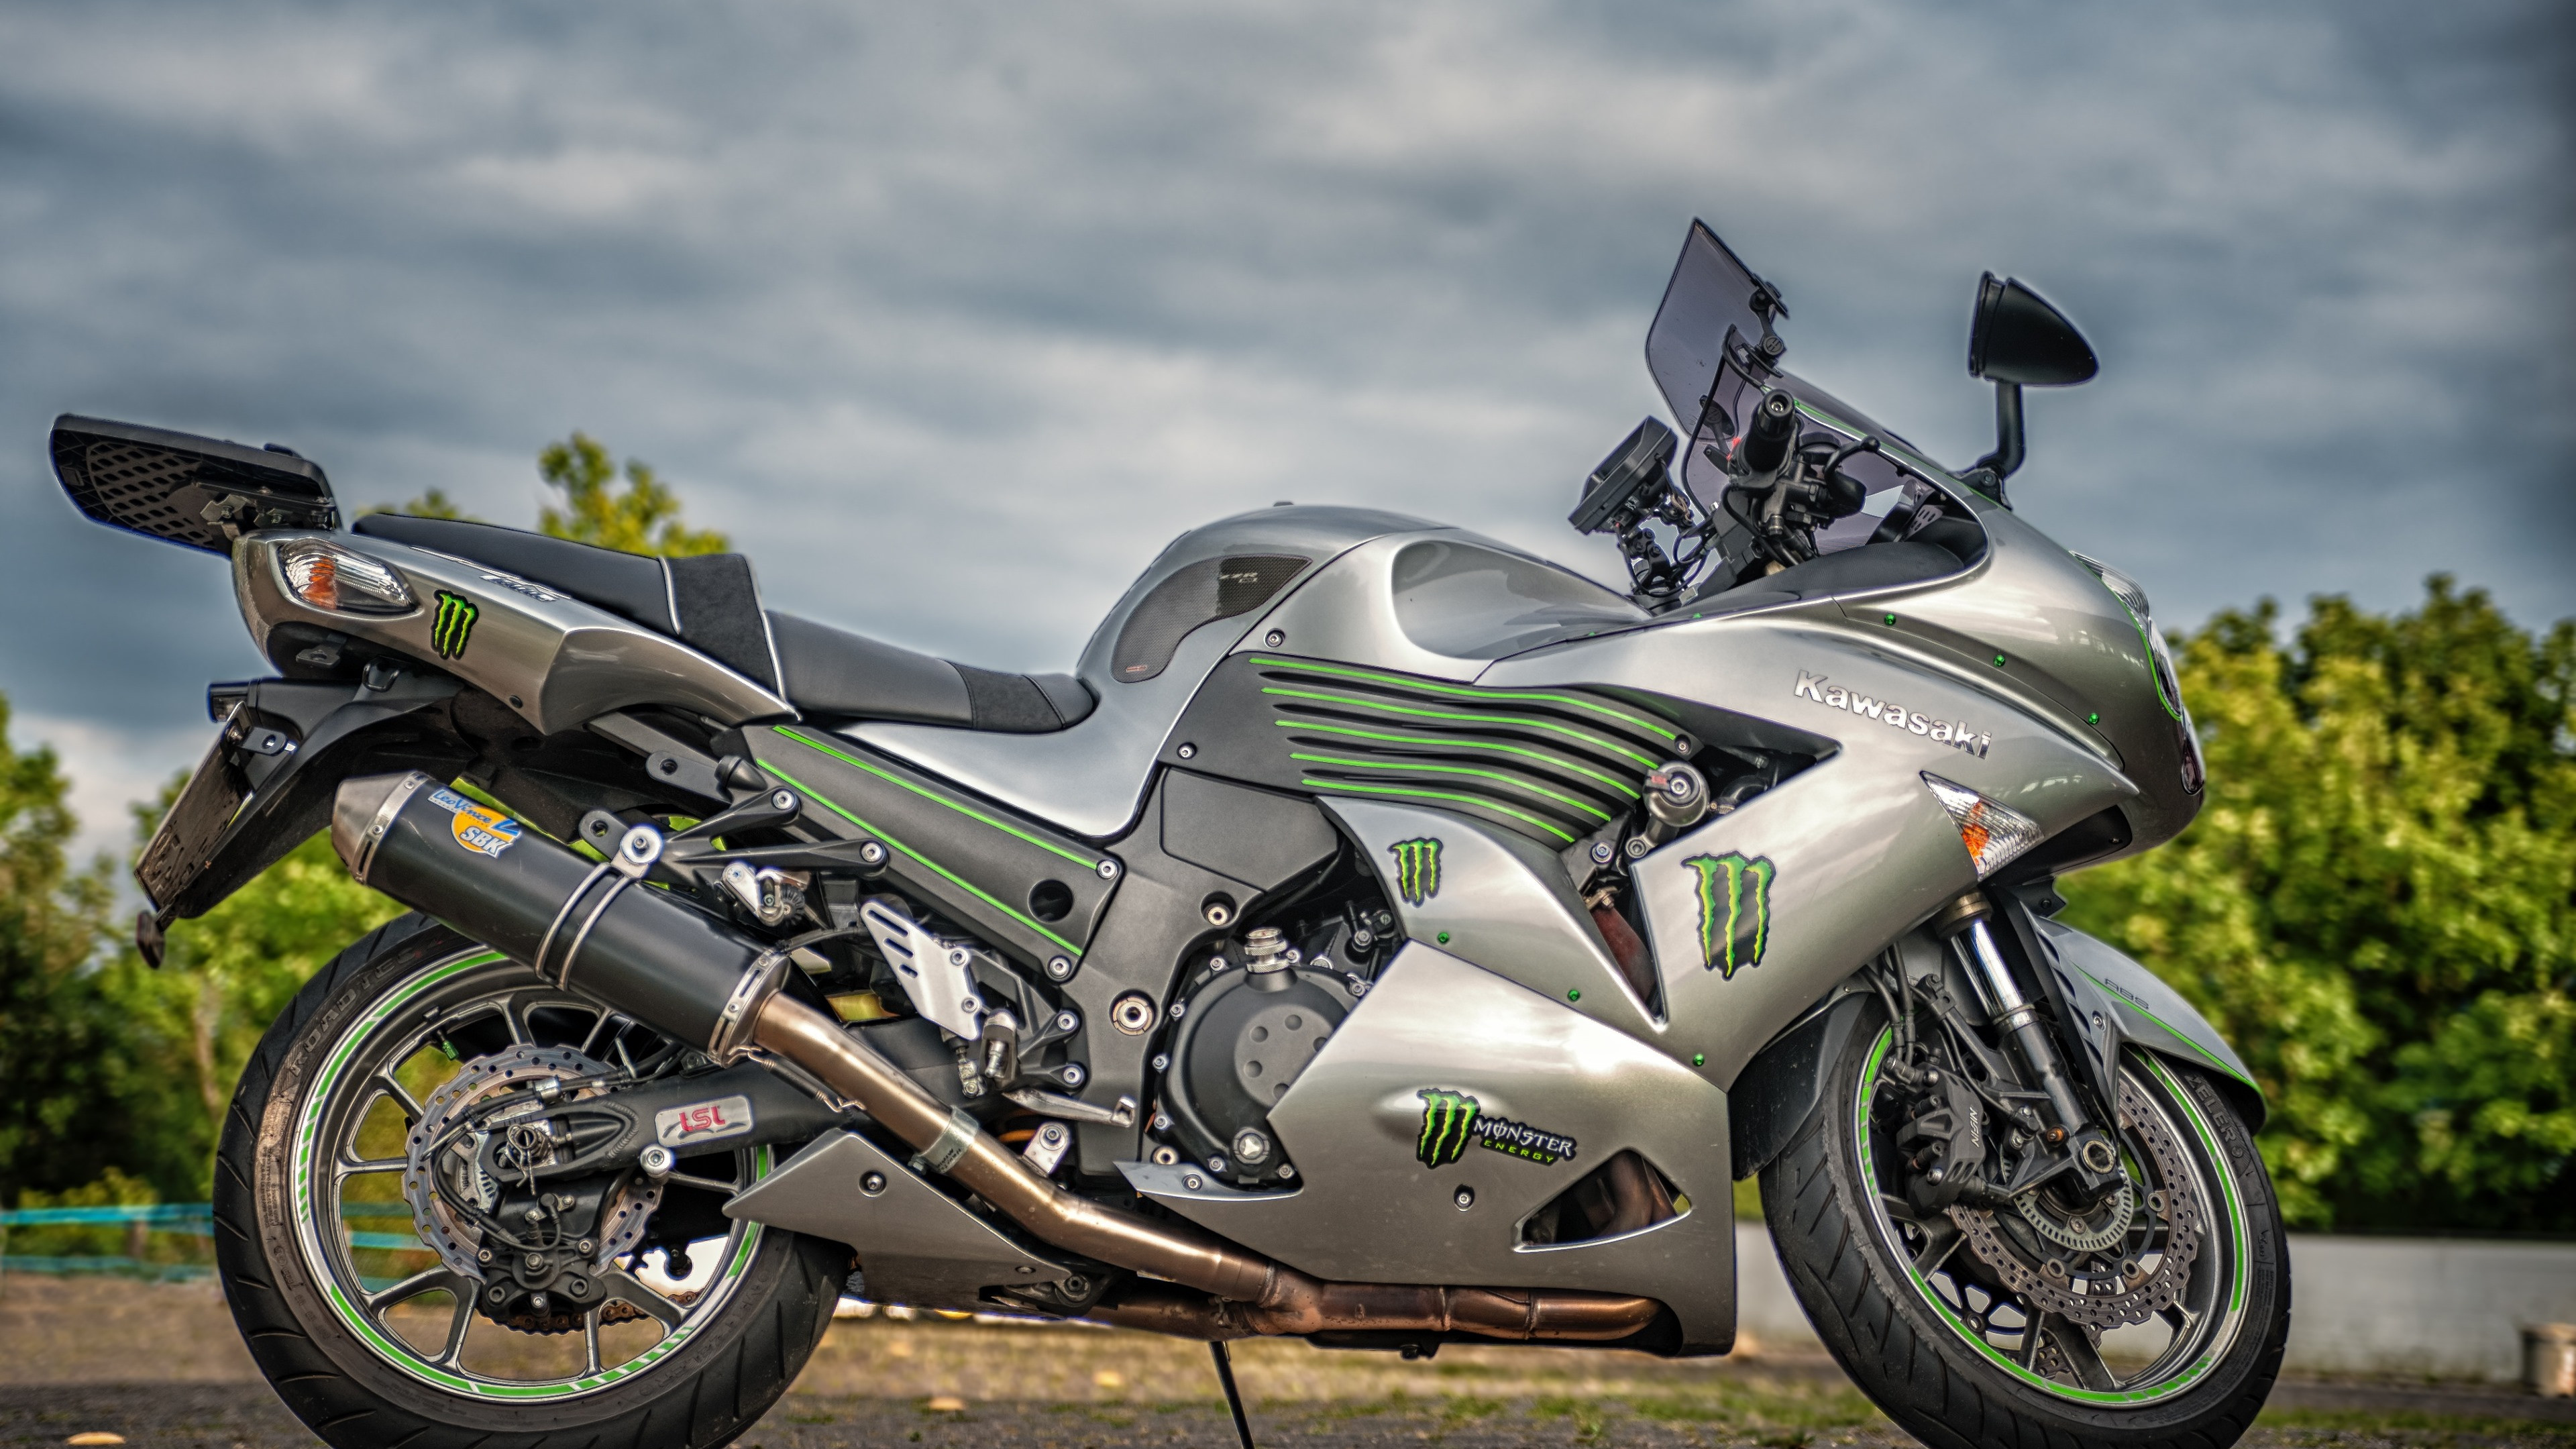 Download wallpaper: Kawasaki ZZR1400 3840x2160